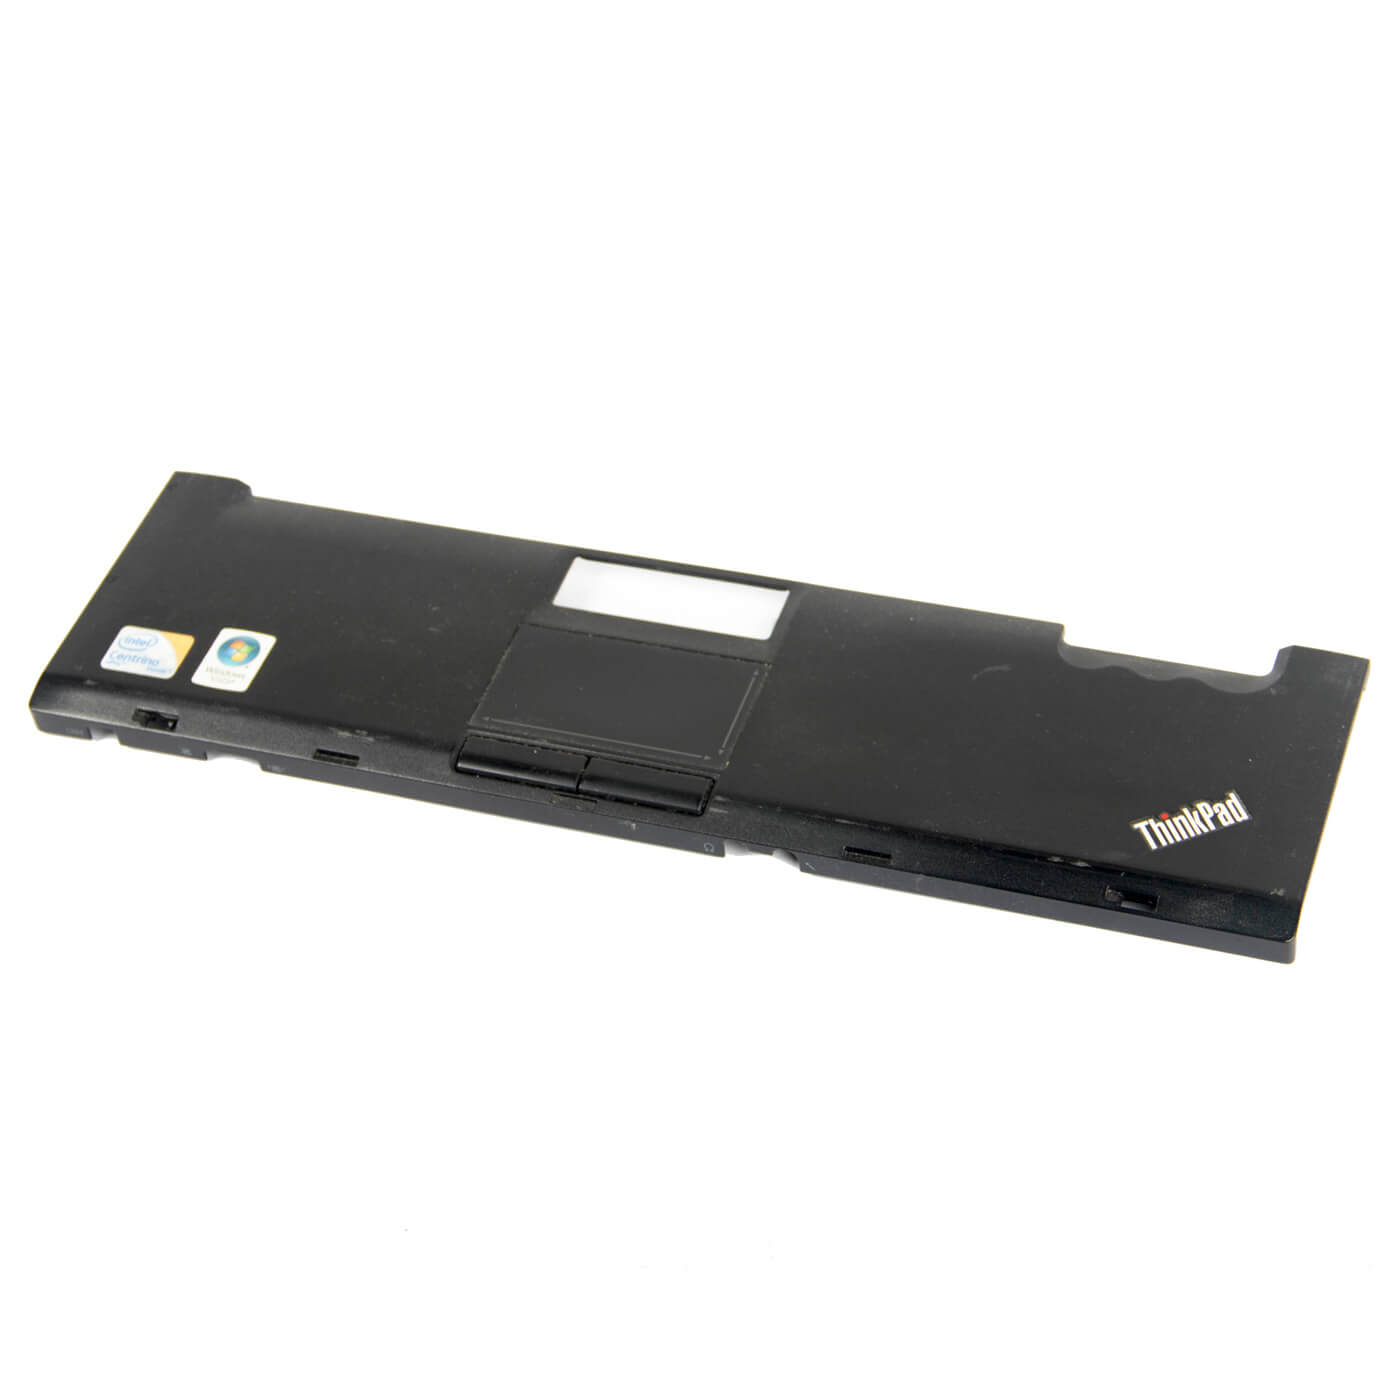 PALMREST DO LAPTOPA / LENOVO / 45N6129 / T400